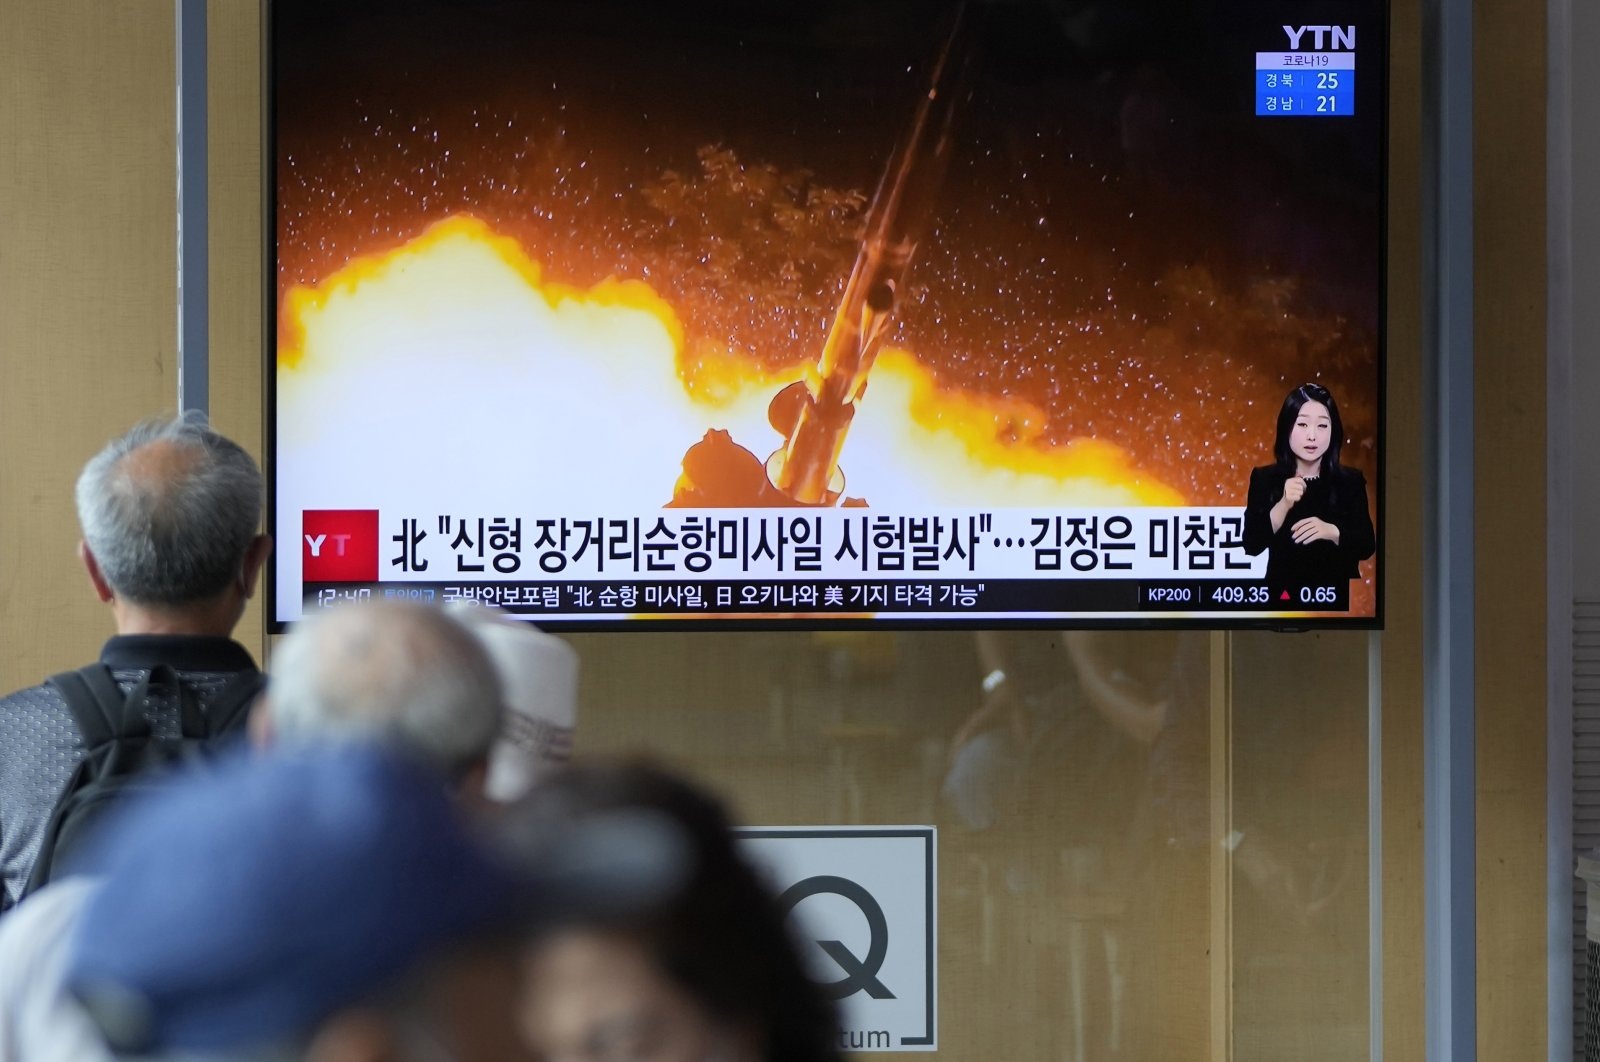 """People watch a news program that was showing part of a North Korean handout photo that says, """"North Korea's long-range cruise missiles tests,"""" in Seoul, South Korea, Sept. 13, 2021. (AP Photo)"""